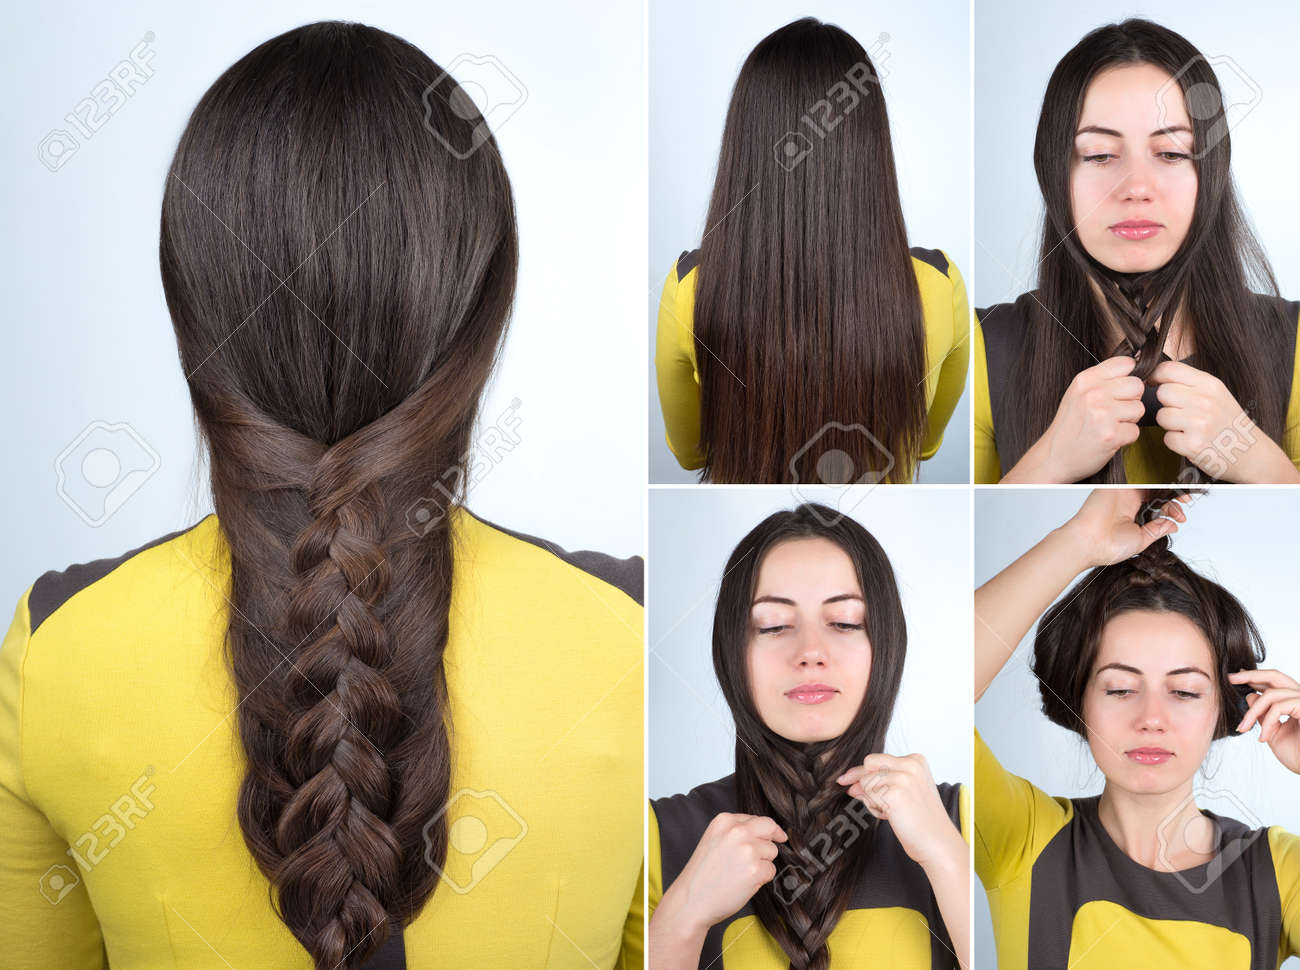 Simple Braid Hairstyle Tutorial. Plait Hairstyle For Long Hair ...